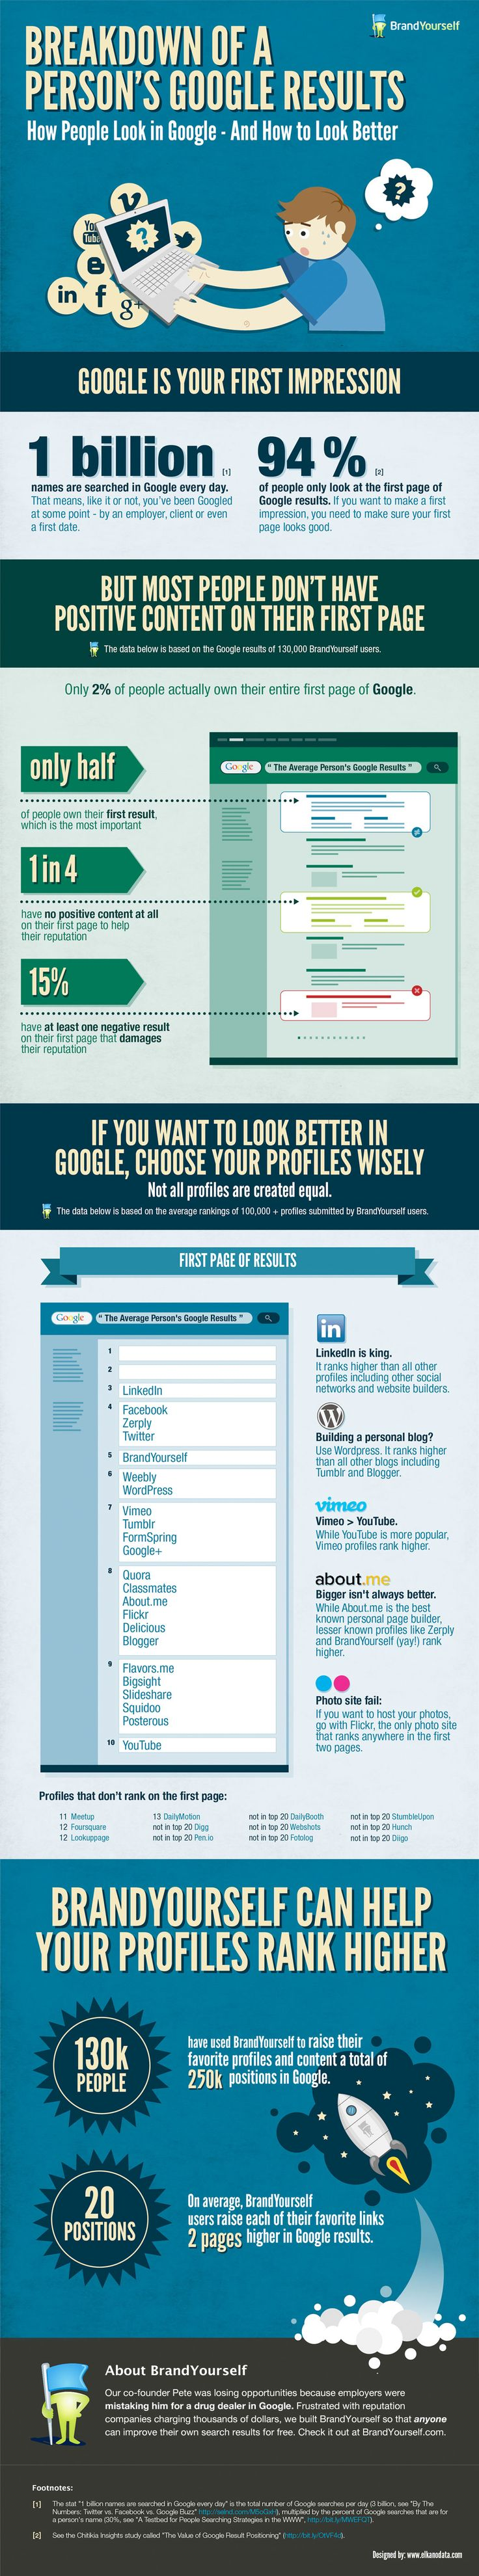 70 best Infographics images on Pinterest | Infographics, Info ...